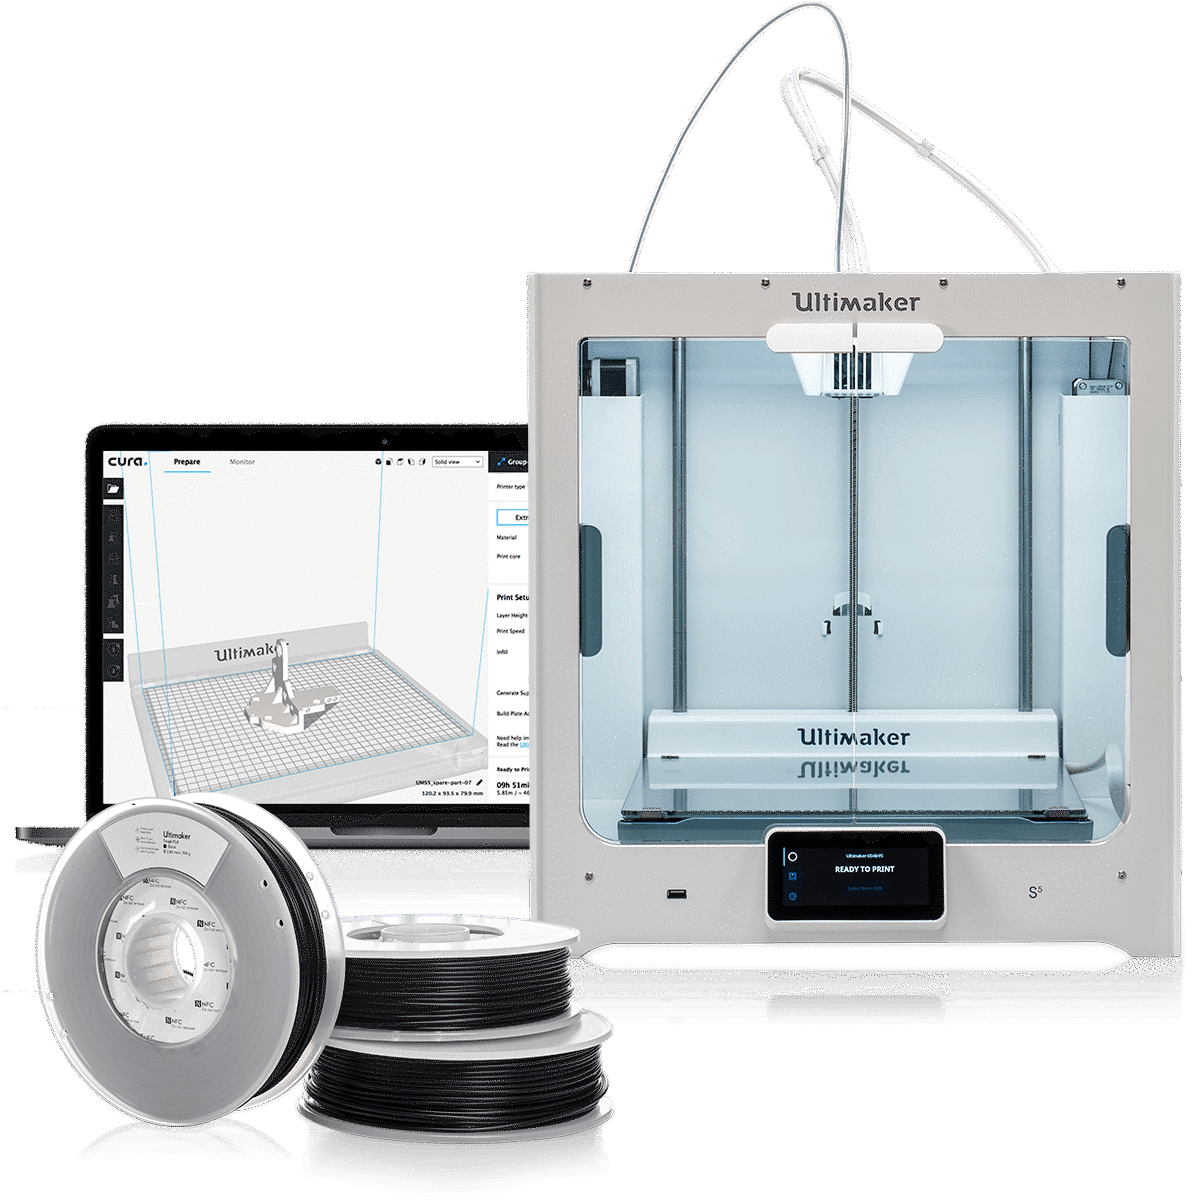 Ultimaker 3D Printer with material and software